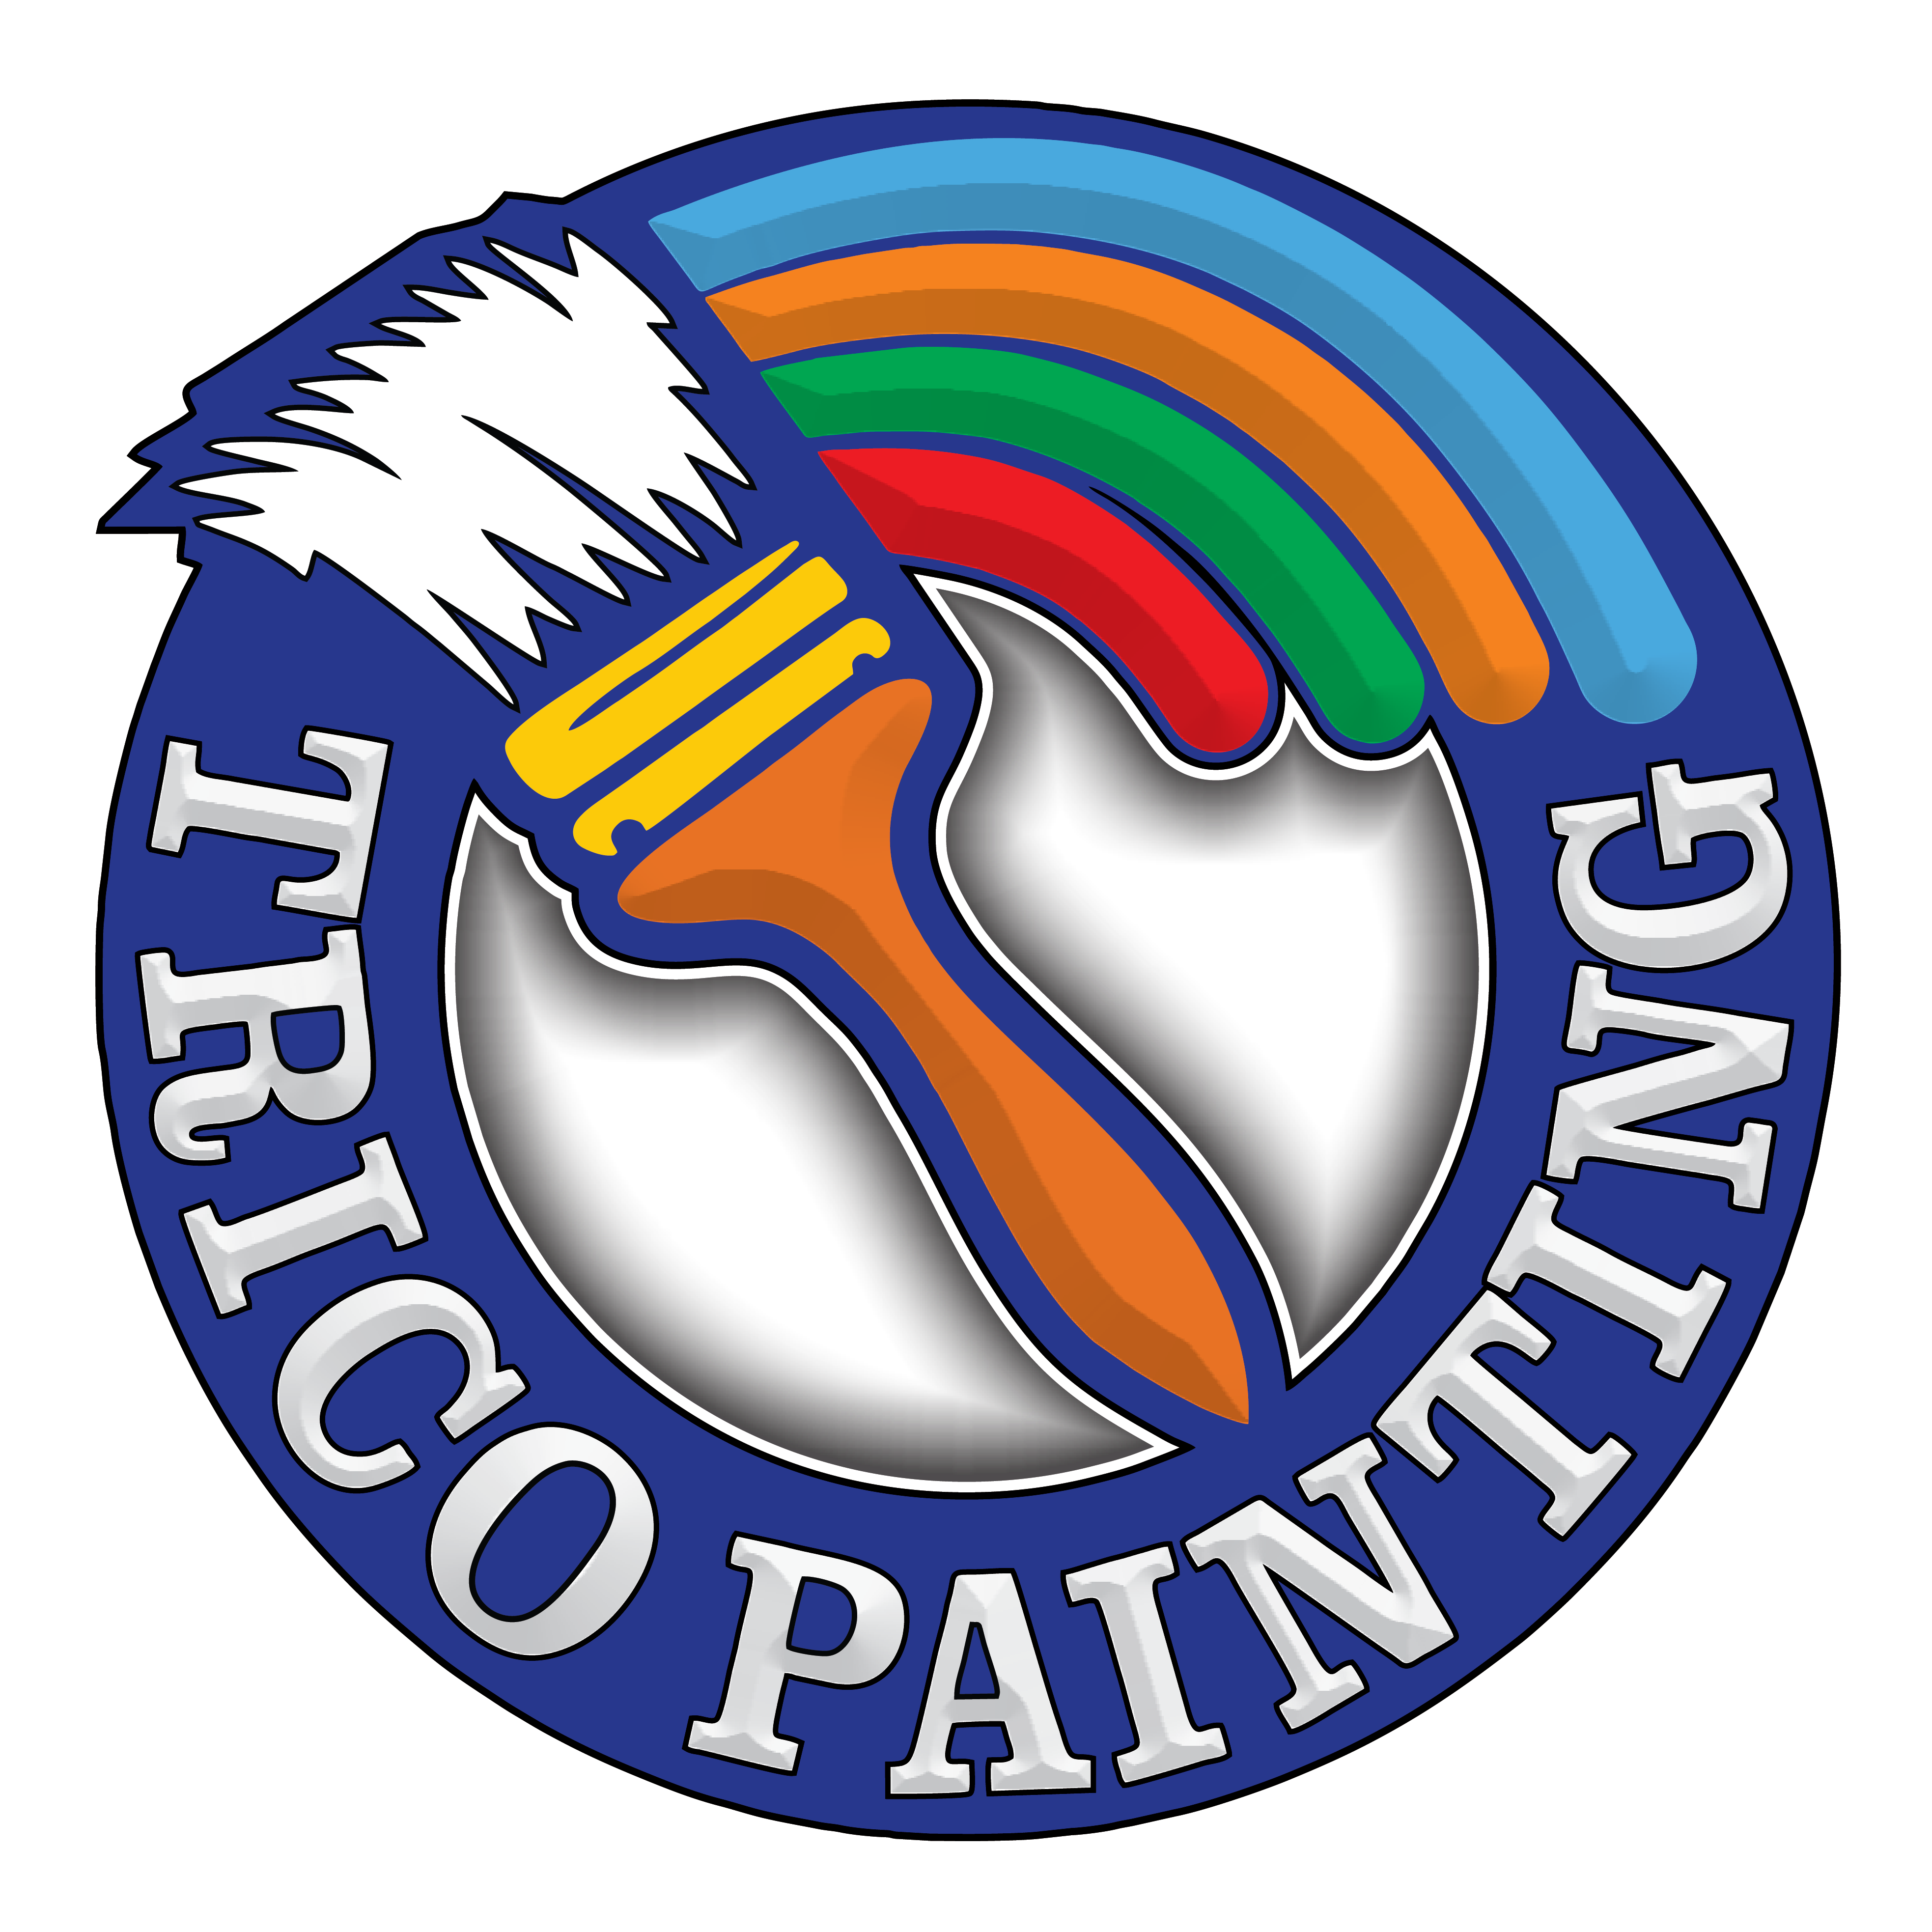 Trico Painting Coupons Near Me In Boydton 8coupons